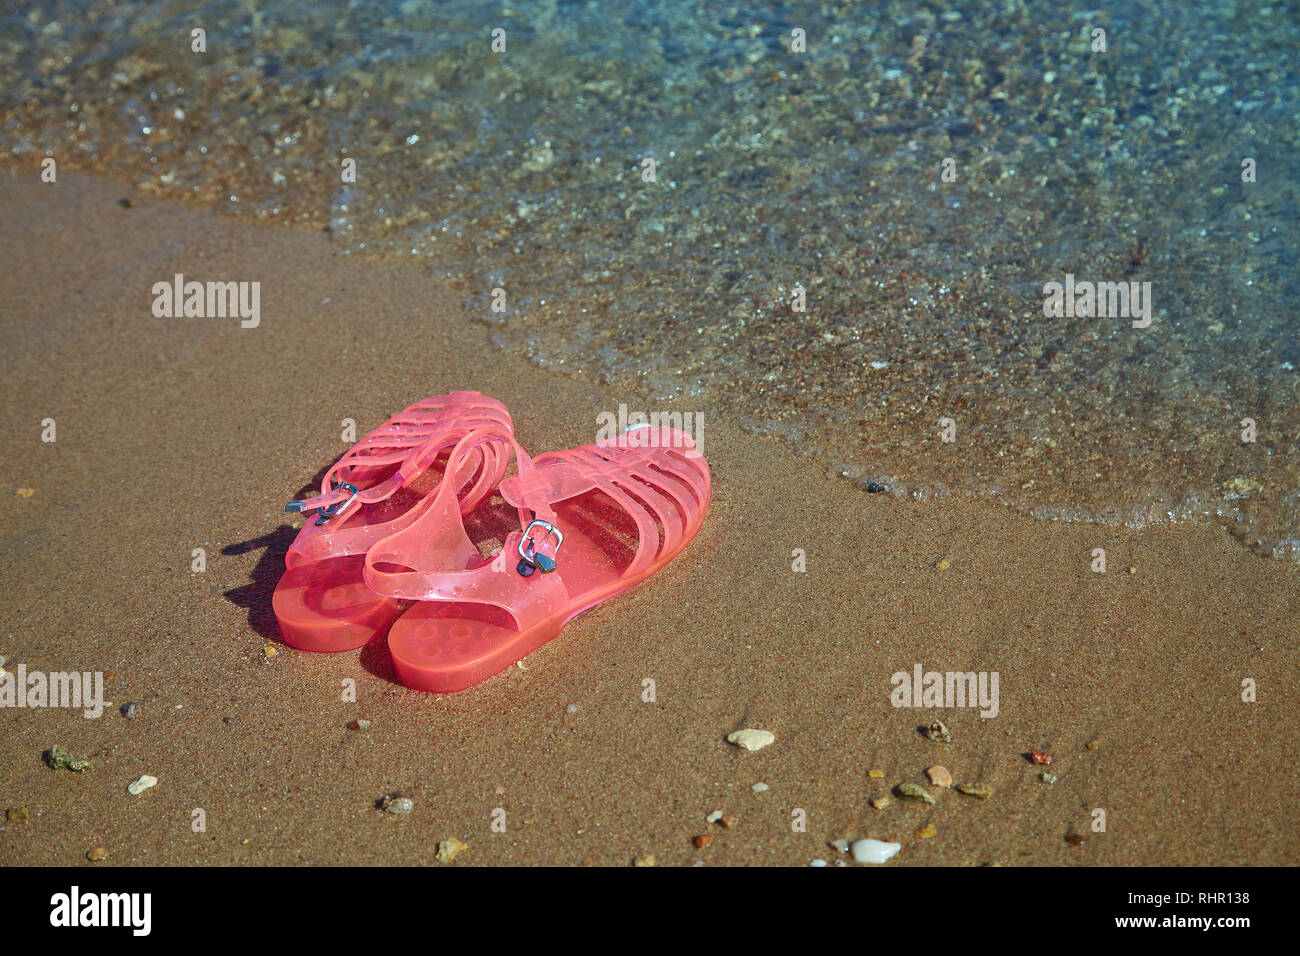 d2f39ae29c01 Pink Women s JELLY SANDALS on a sea shore. LADIES FLAT JELLIES SUMMER BEACH  SHOES.